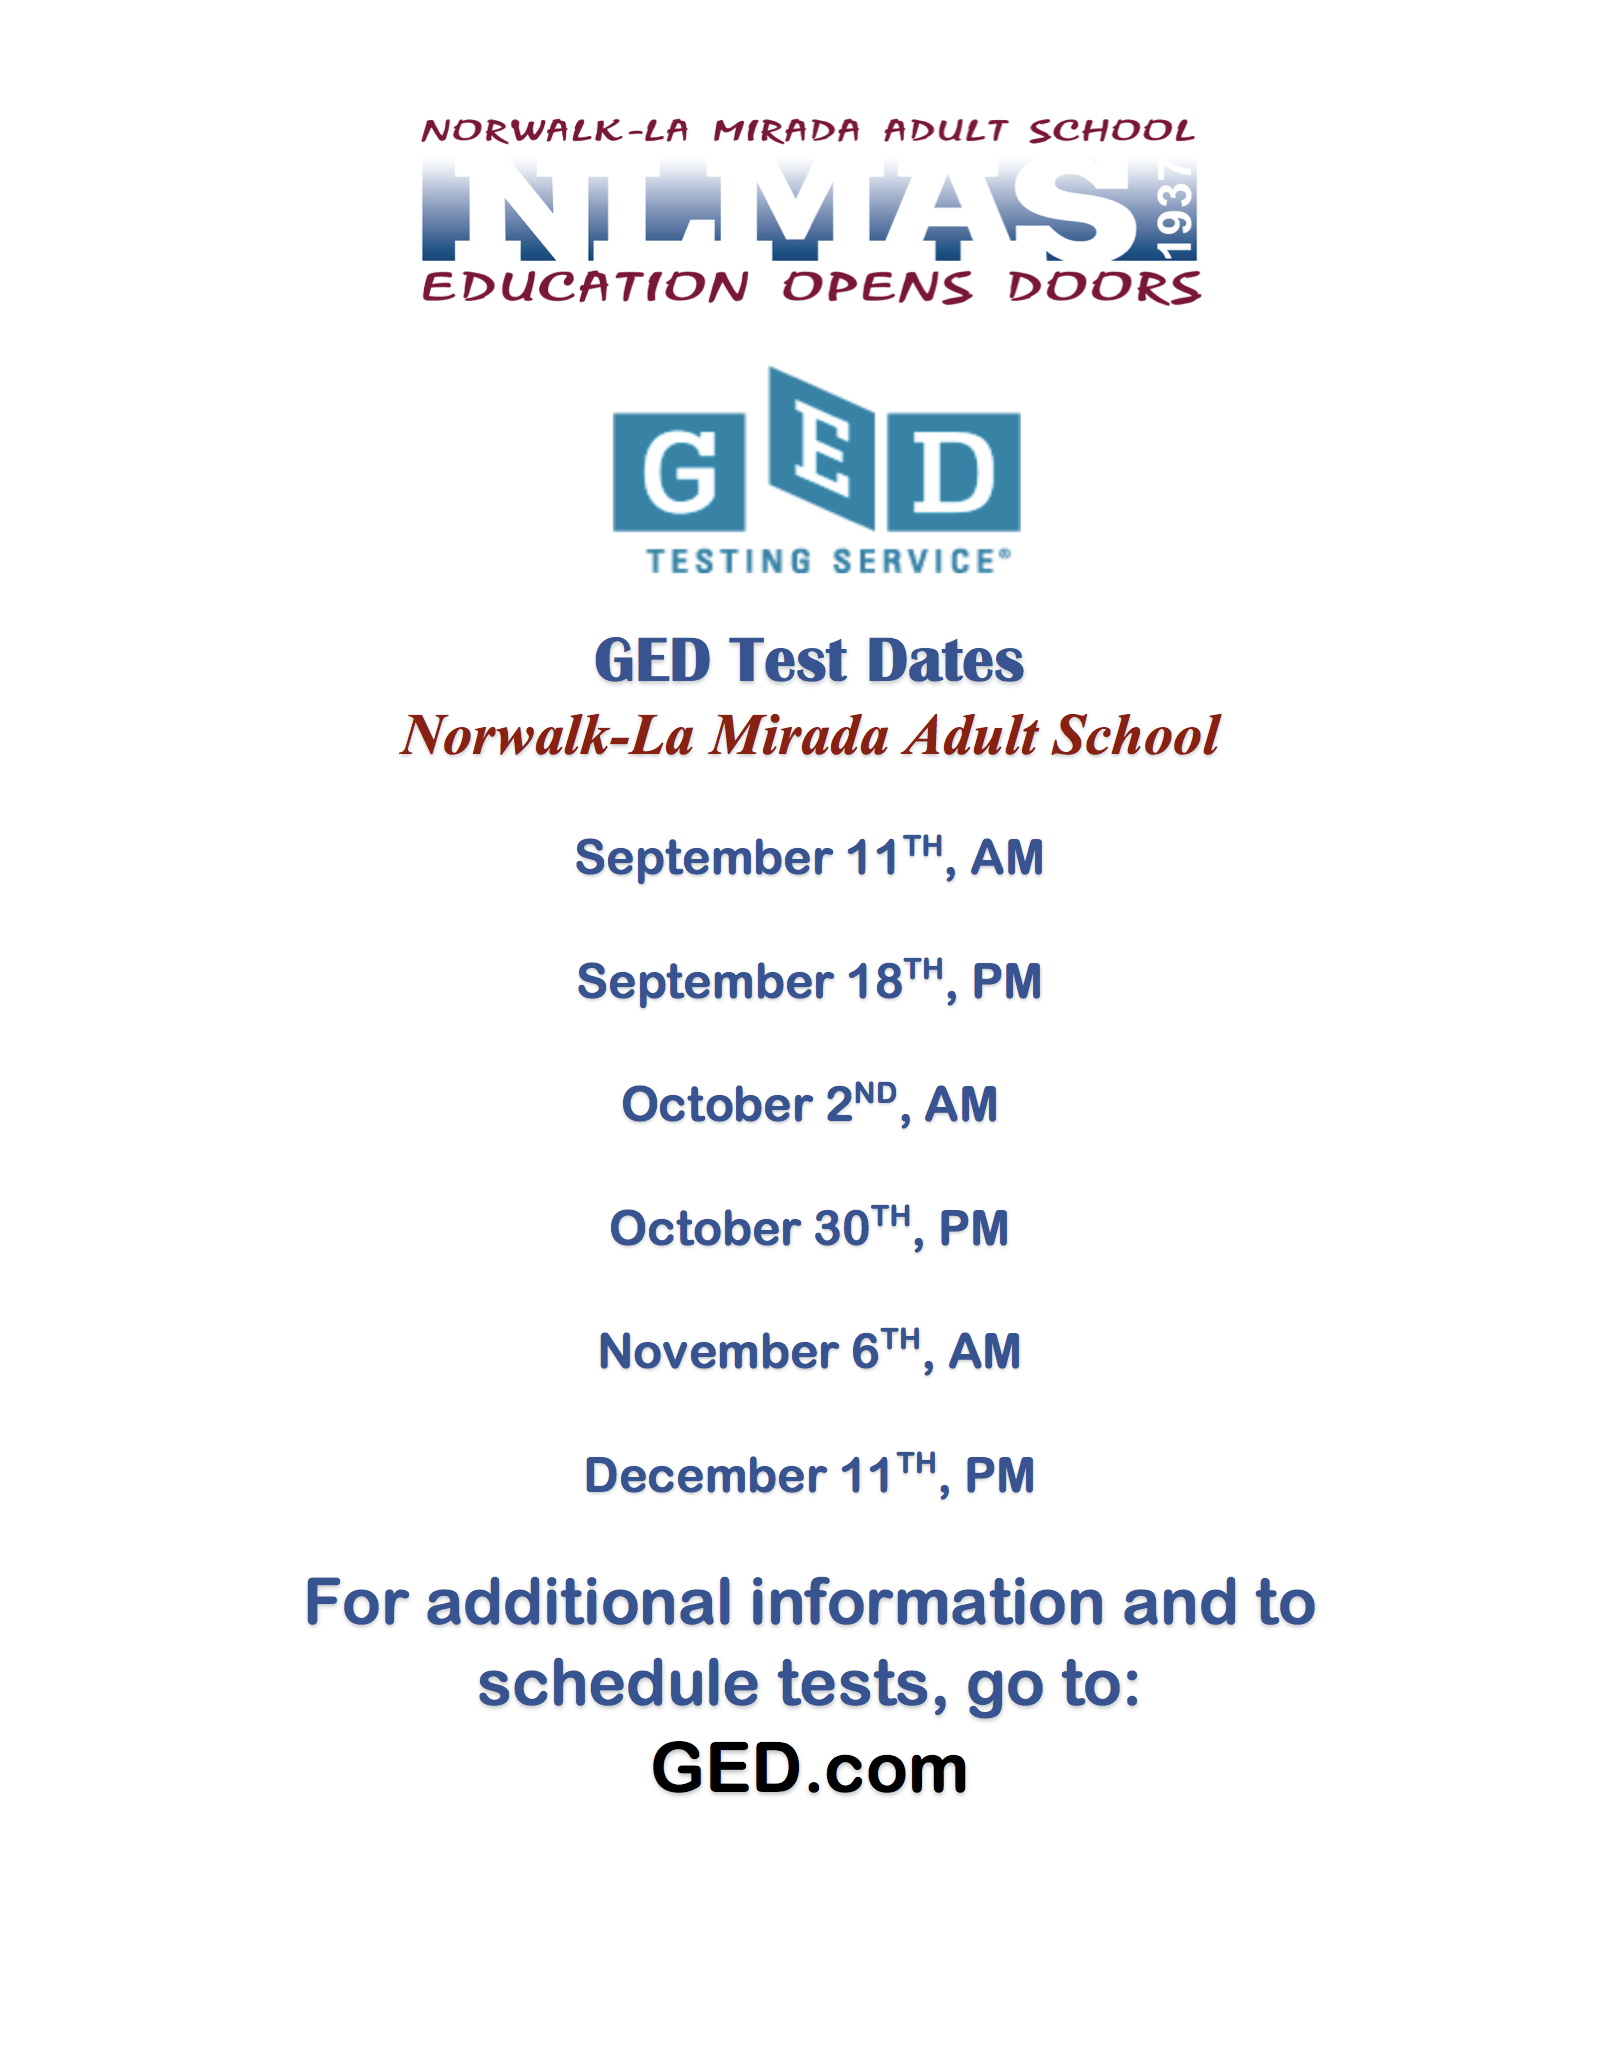 GED Test Dates for Fall 2018